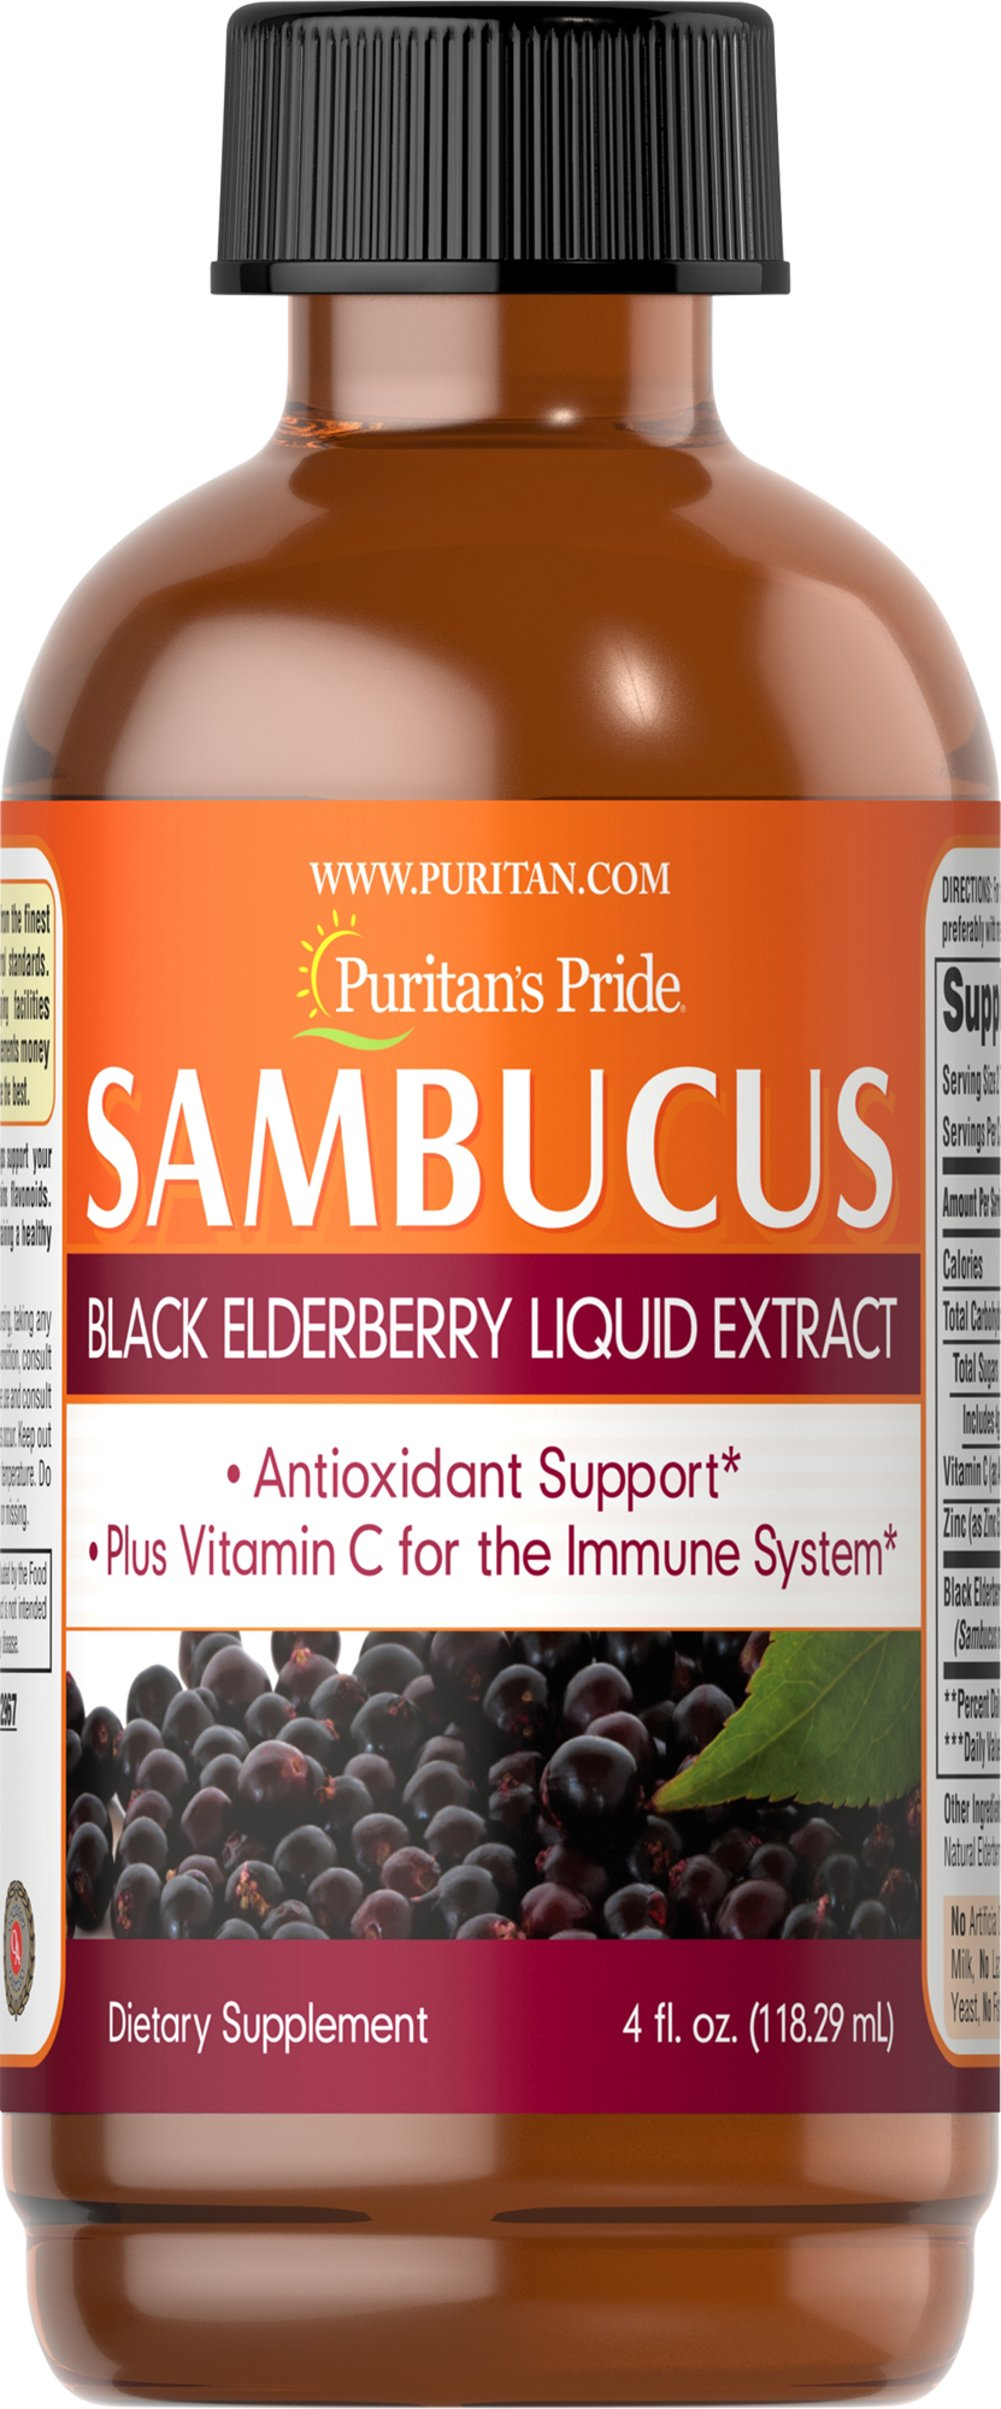 Sambucus Black Elderberry Liquid Extract <p>Antioxidant Support**</p><p>Plus vitamin C for the Immune System**</p><p>Taken every day, Sambucus helps support your overall health and wellness.**  Elderberry contains flavonoids for antioxidant support.**  Vitamin C and Zinc play an important role in maintaining a healthy immune system.**</p> 4 oz Liquid  $13.99